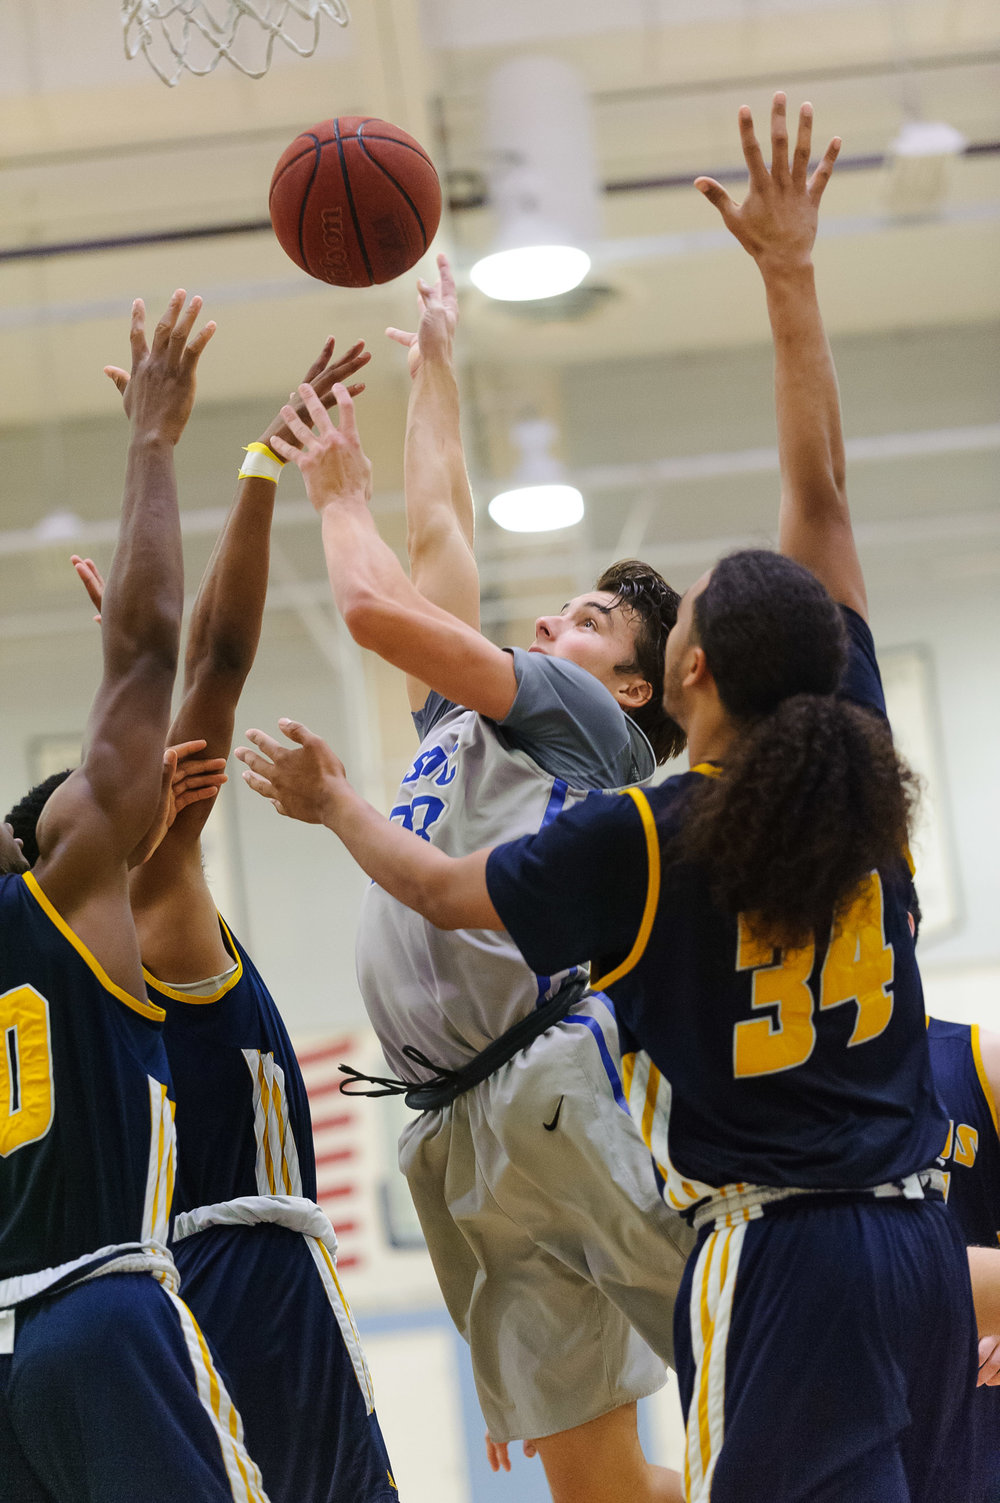 Forward Dayne Downey (23,Middle) of Santa Monica College goes up for a shot attempt by the basket while contested by College of the Canyons defense. The Santa Monica College Corsairs lose the game 74-72 to the College of the Canyons Cougars. The game was held at the SMC Pavilion at the Santa Monica College Main Campus in Santa Monica, Calif.. February 10, 2018. (Photo by: Justin Han/Corsair Staff)